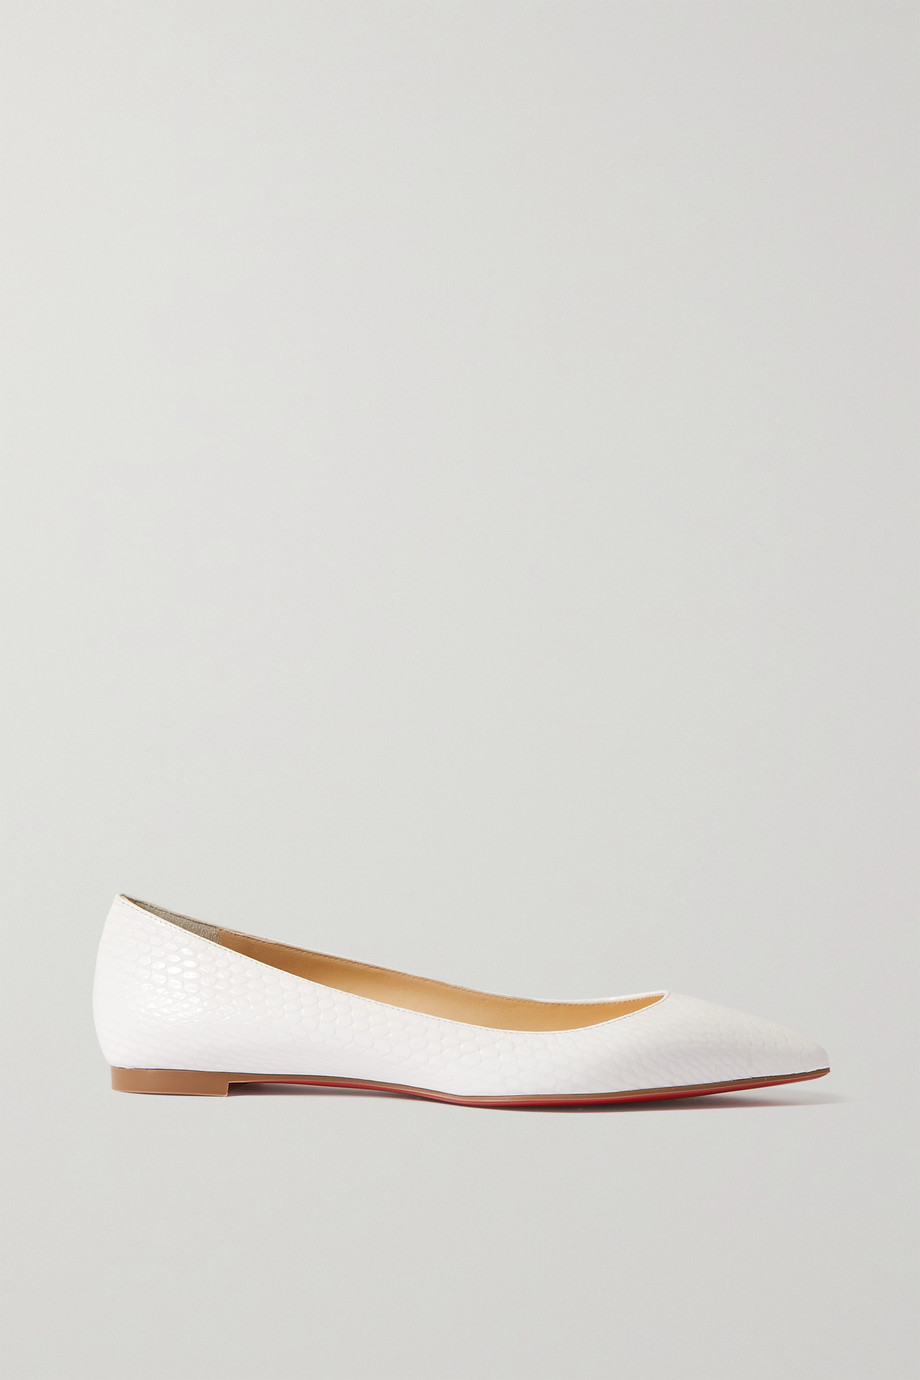 CHRISTIAN LOUBOUTIN Ballalla lizard-effect leather point-toe flats